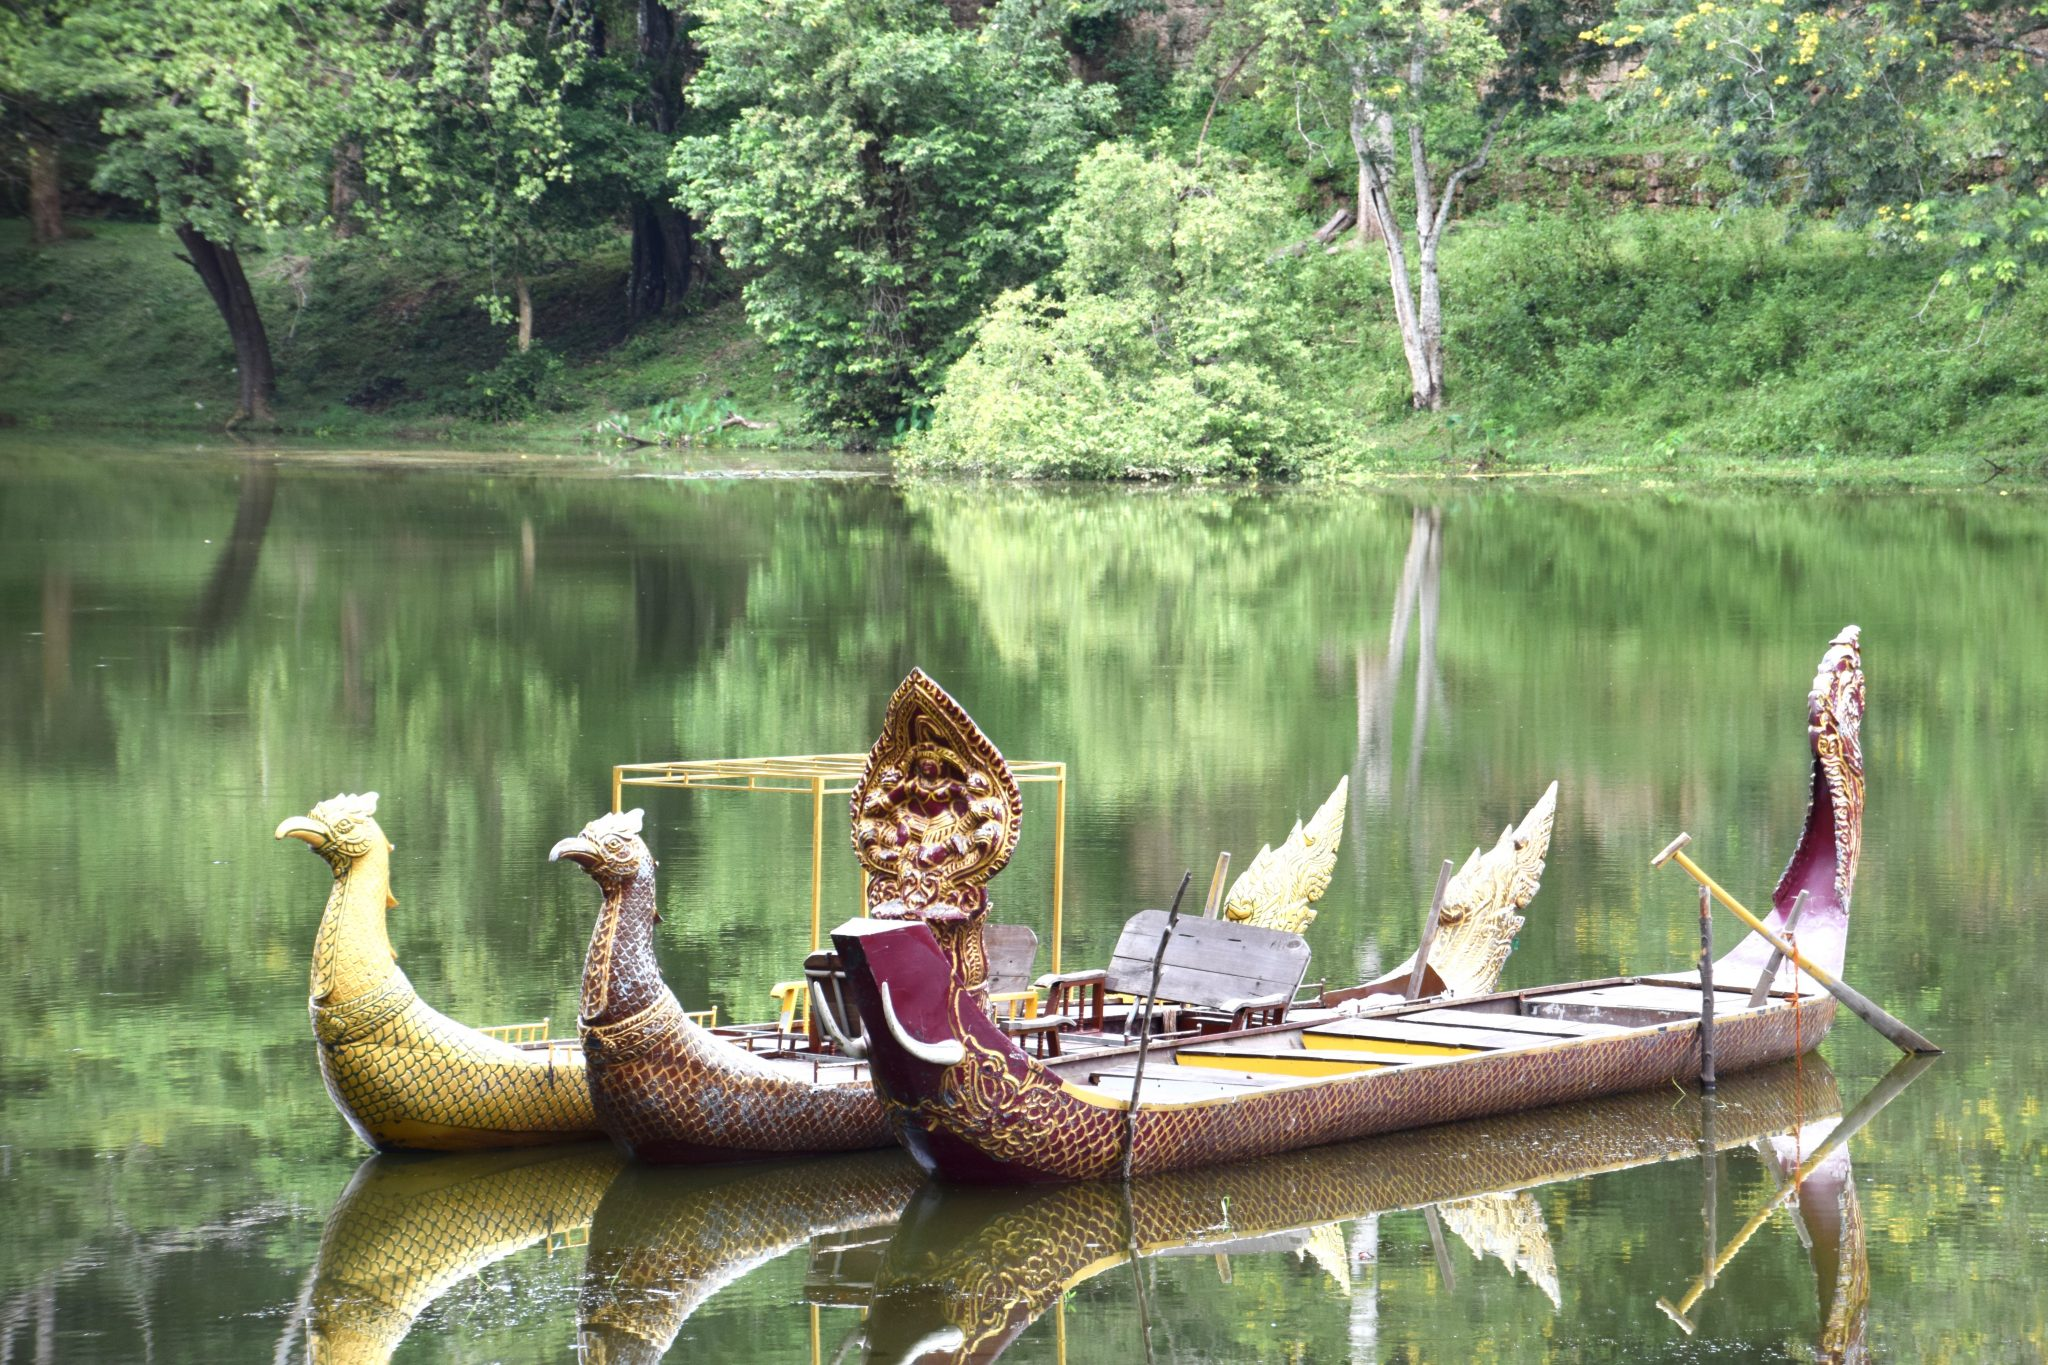 traditional Cambodian boats float on tranquil lake near Angkor Thom, Siem Reap